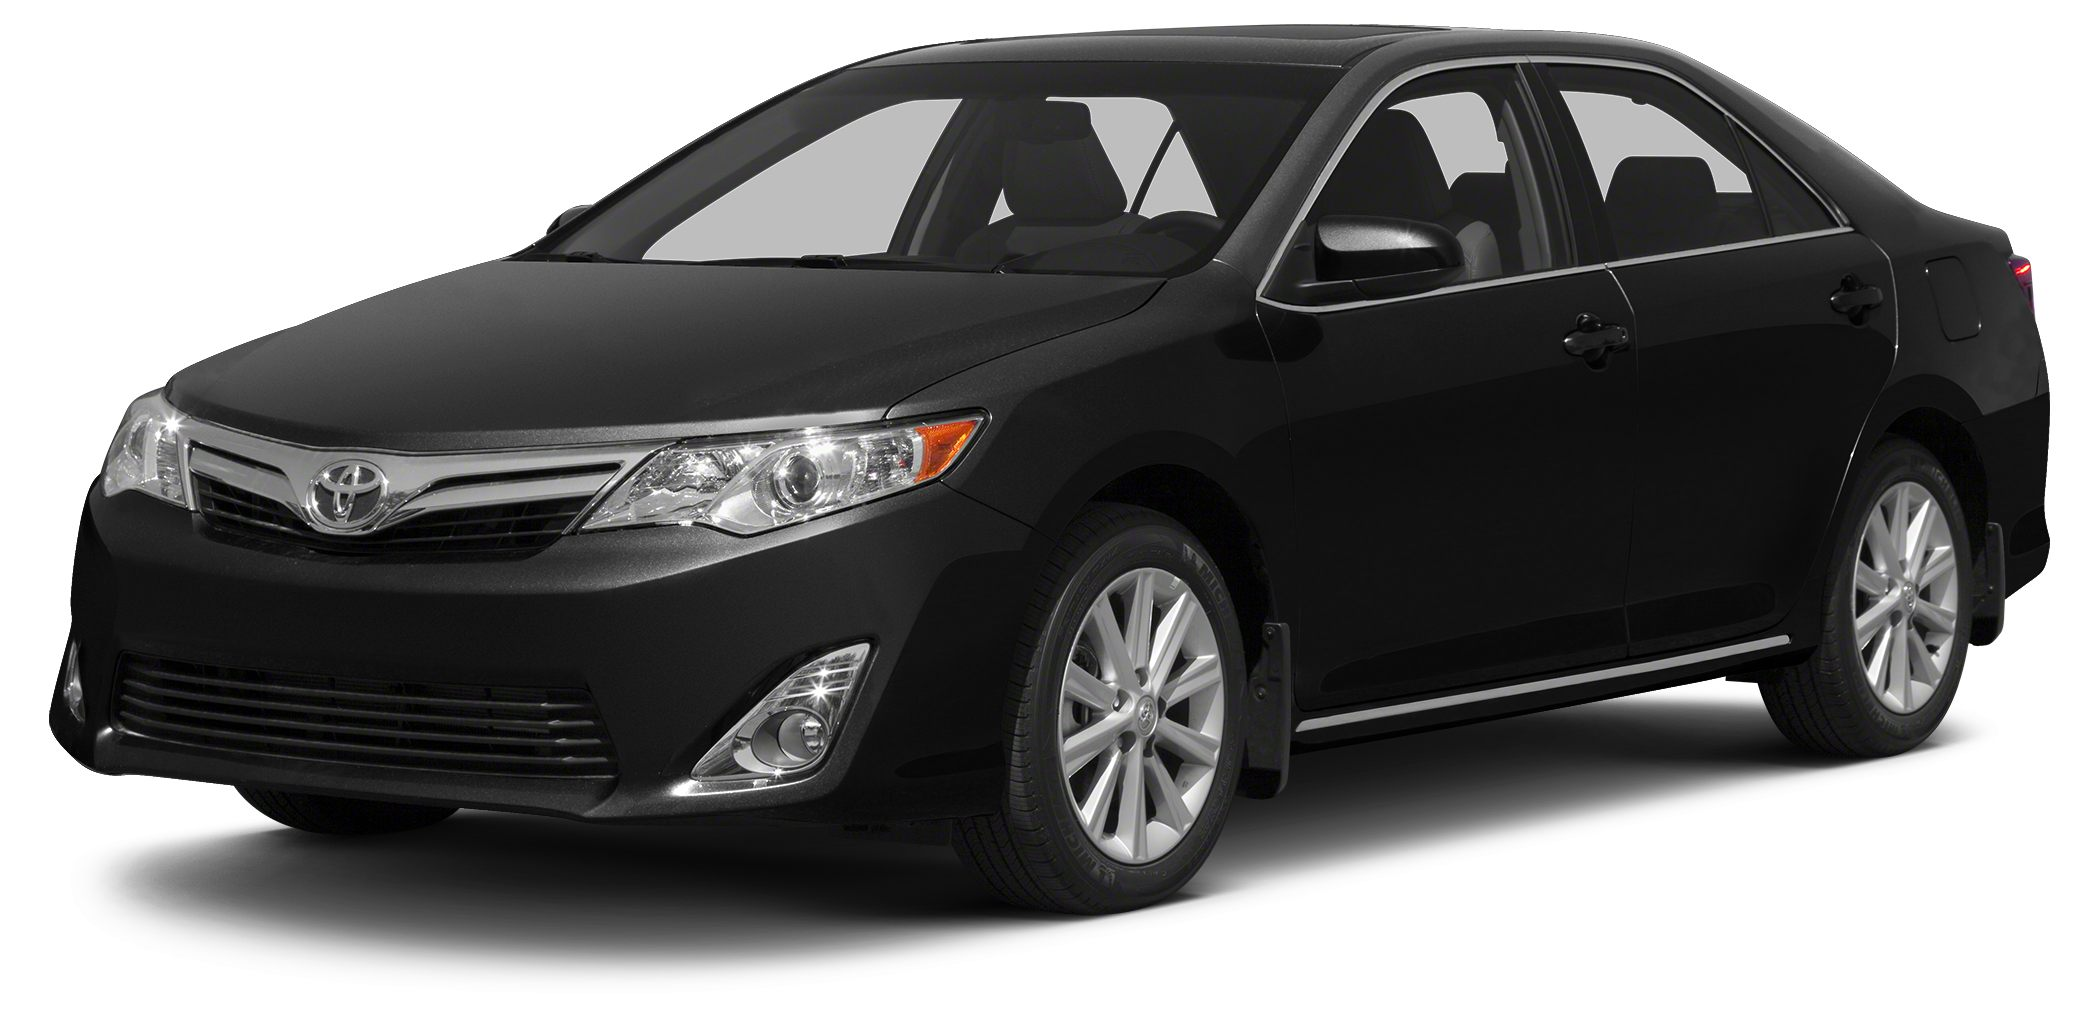 2012 Toyota Camry XLE EPA 30 MPG Hwy21 MPG City CARFAX 1-Owner LOW MILES - 42769 XLE trim NA